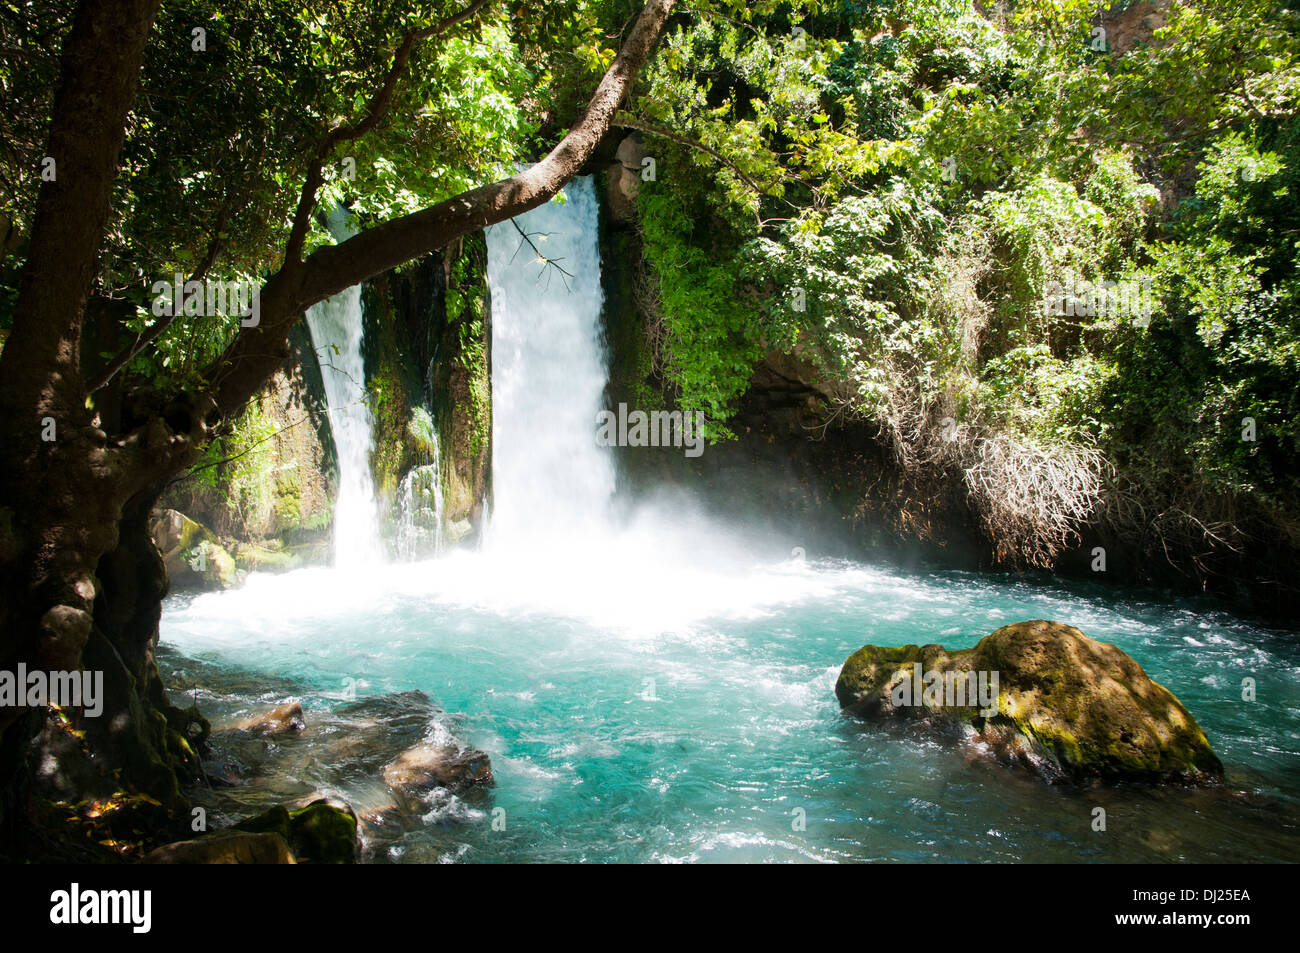 Hermon Stream Nature reserve (Banias) Golan Heights Israel This stream is one of the sources of the Jordan River - Stock Image